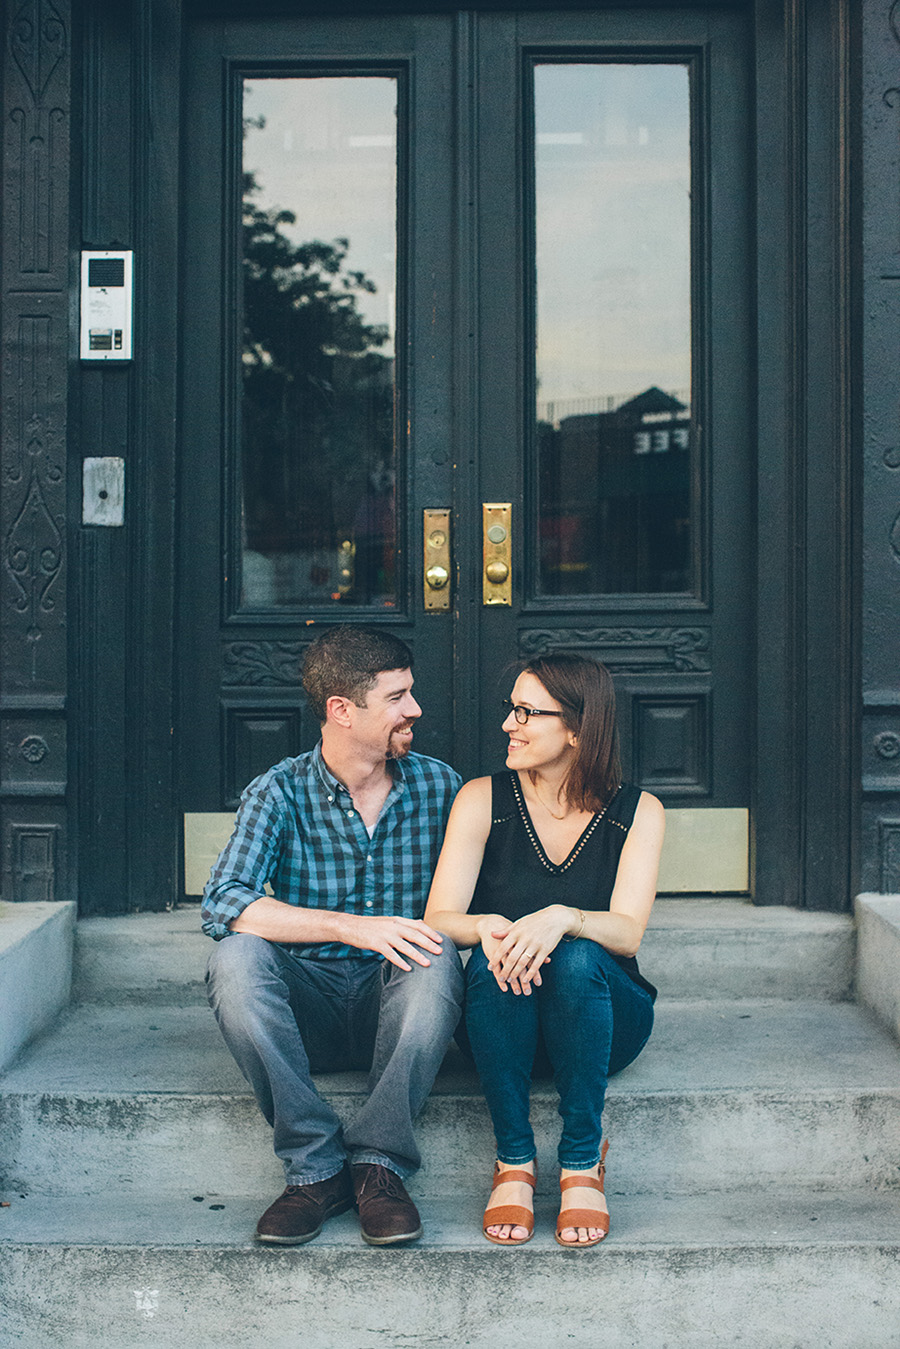 LAURIE-MATT-ENGAGEMENT-PARKSLOPE-PROSPECTPARK-BROOKLYN-ENGAGEMENT-SESSION-CYNTHIACHUNG-BLOG-0022.jpg